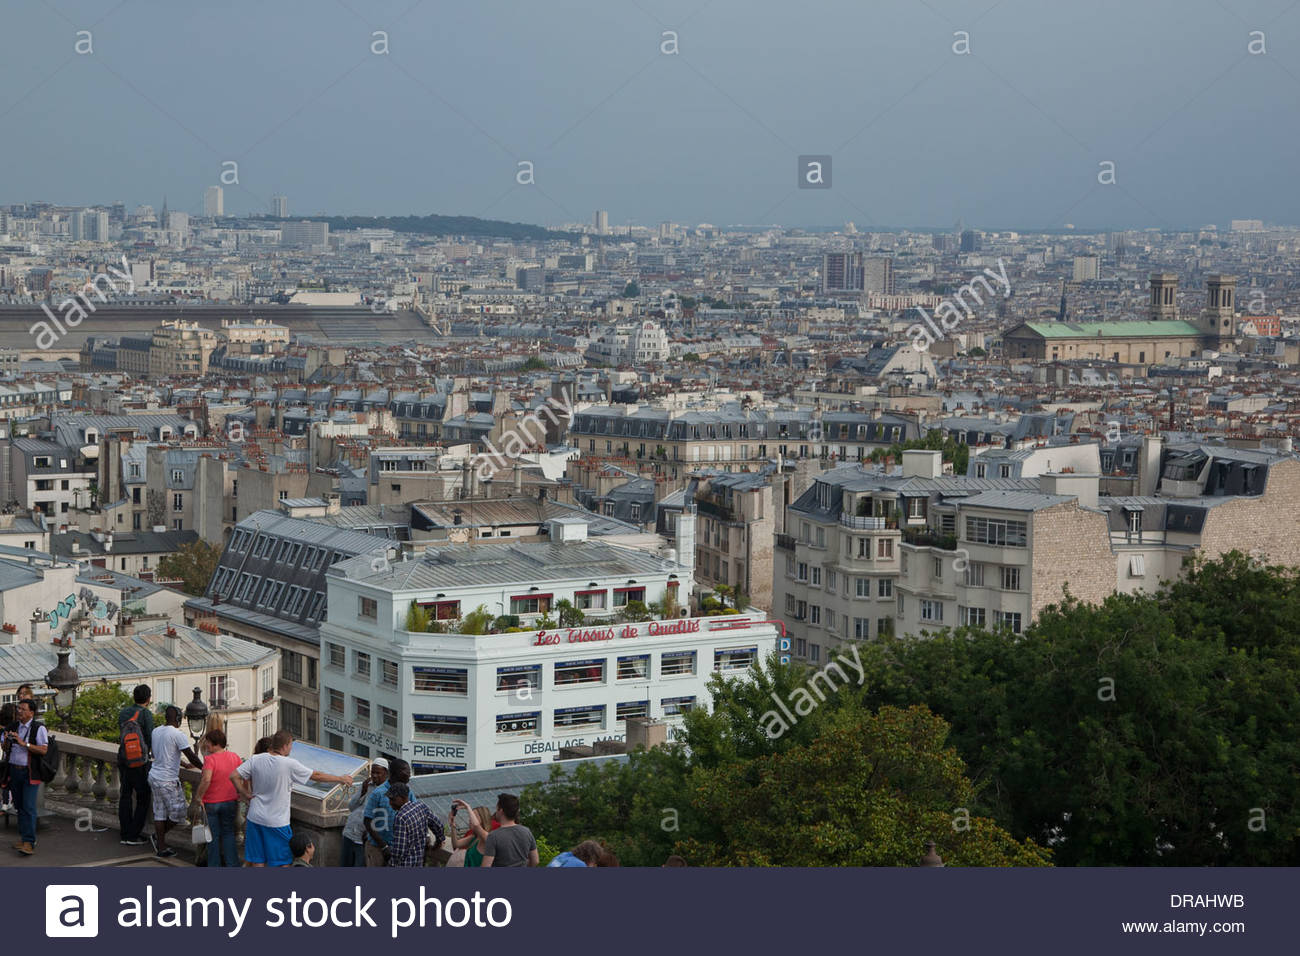 saint pierre market paris photos saint pierre market paris images alamy. Black Bedroom Furniture Sets. Home Design Ideas